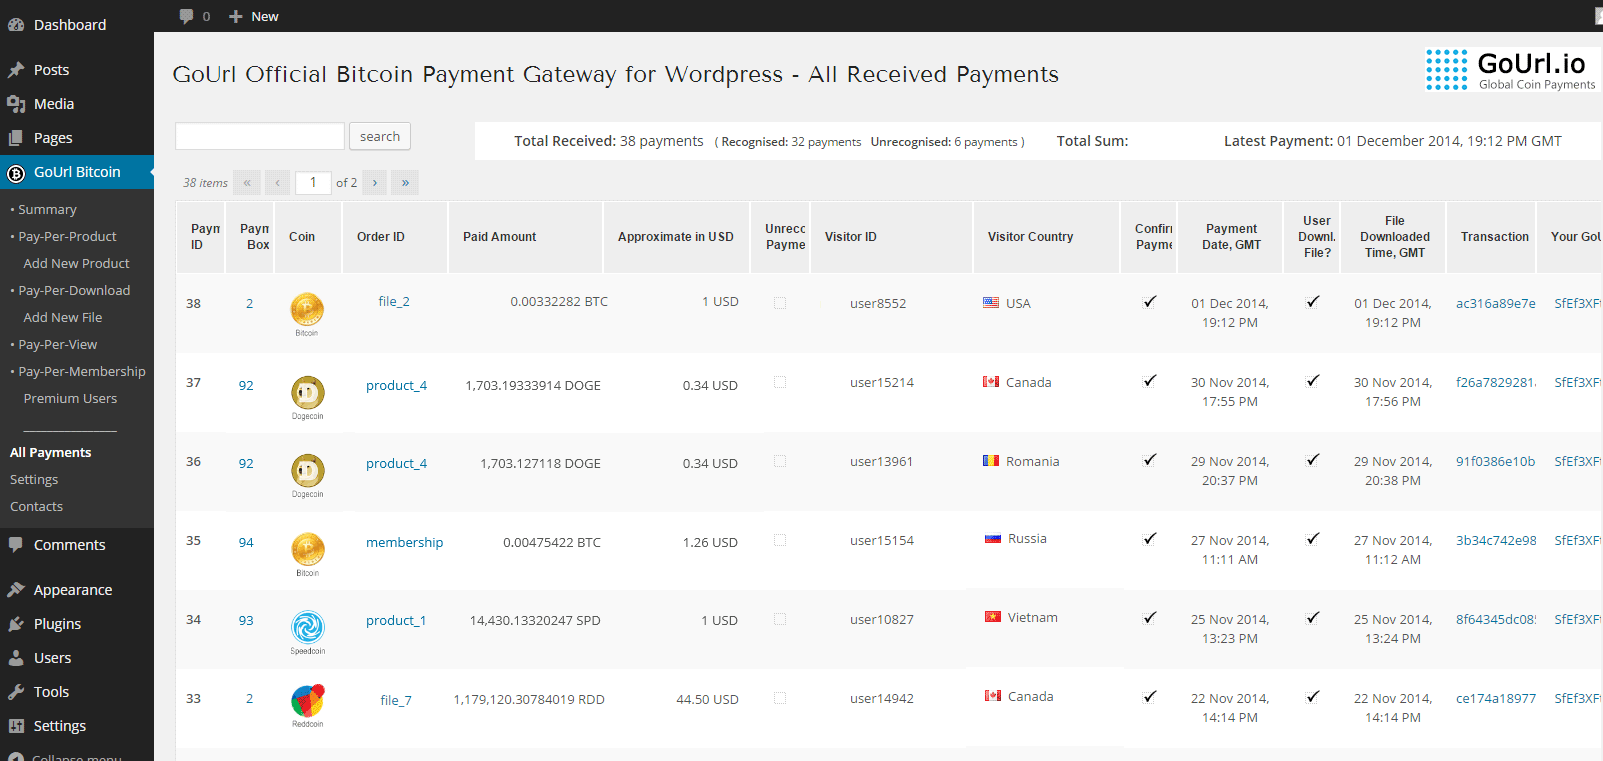 All Payments Page - list of all received payments